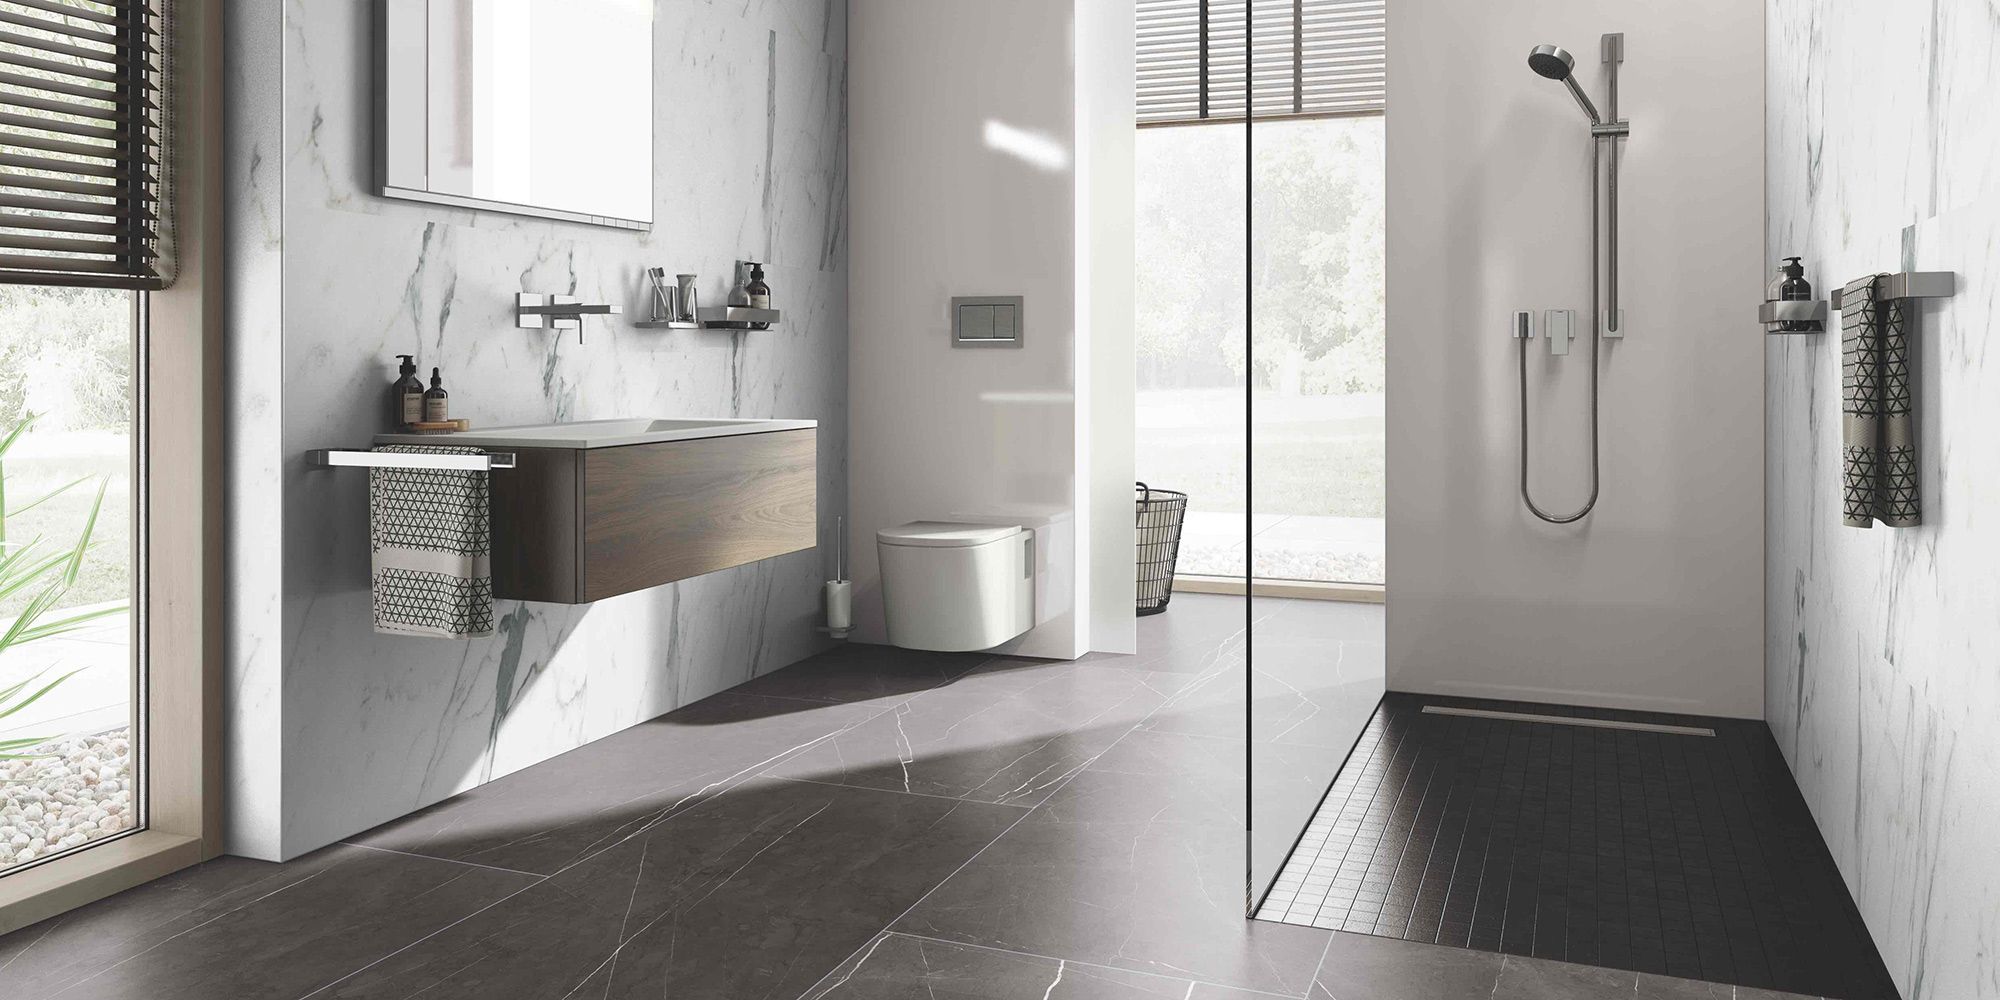 Extra large format ceramin tiles Ireland. Durable as tiles, but much more lightweight, waterproof and PVC free.